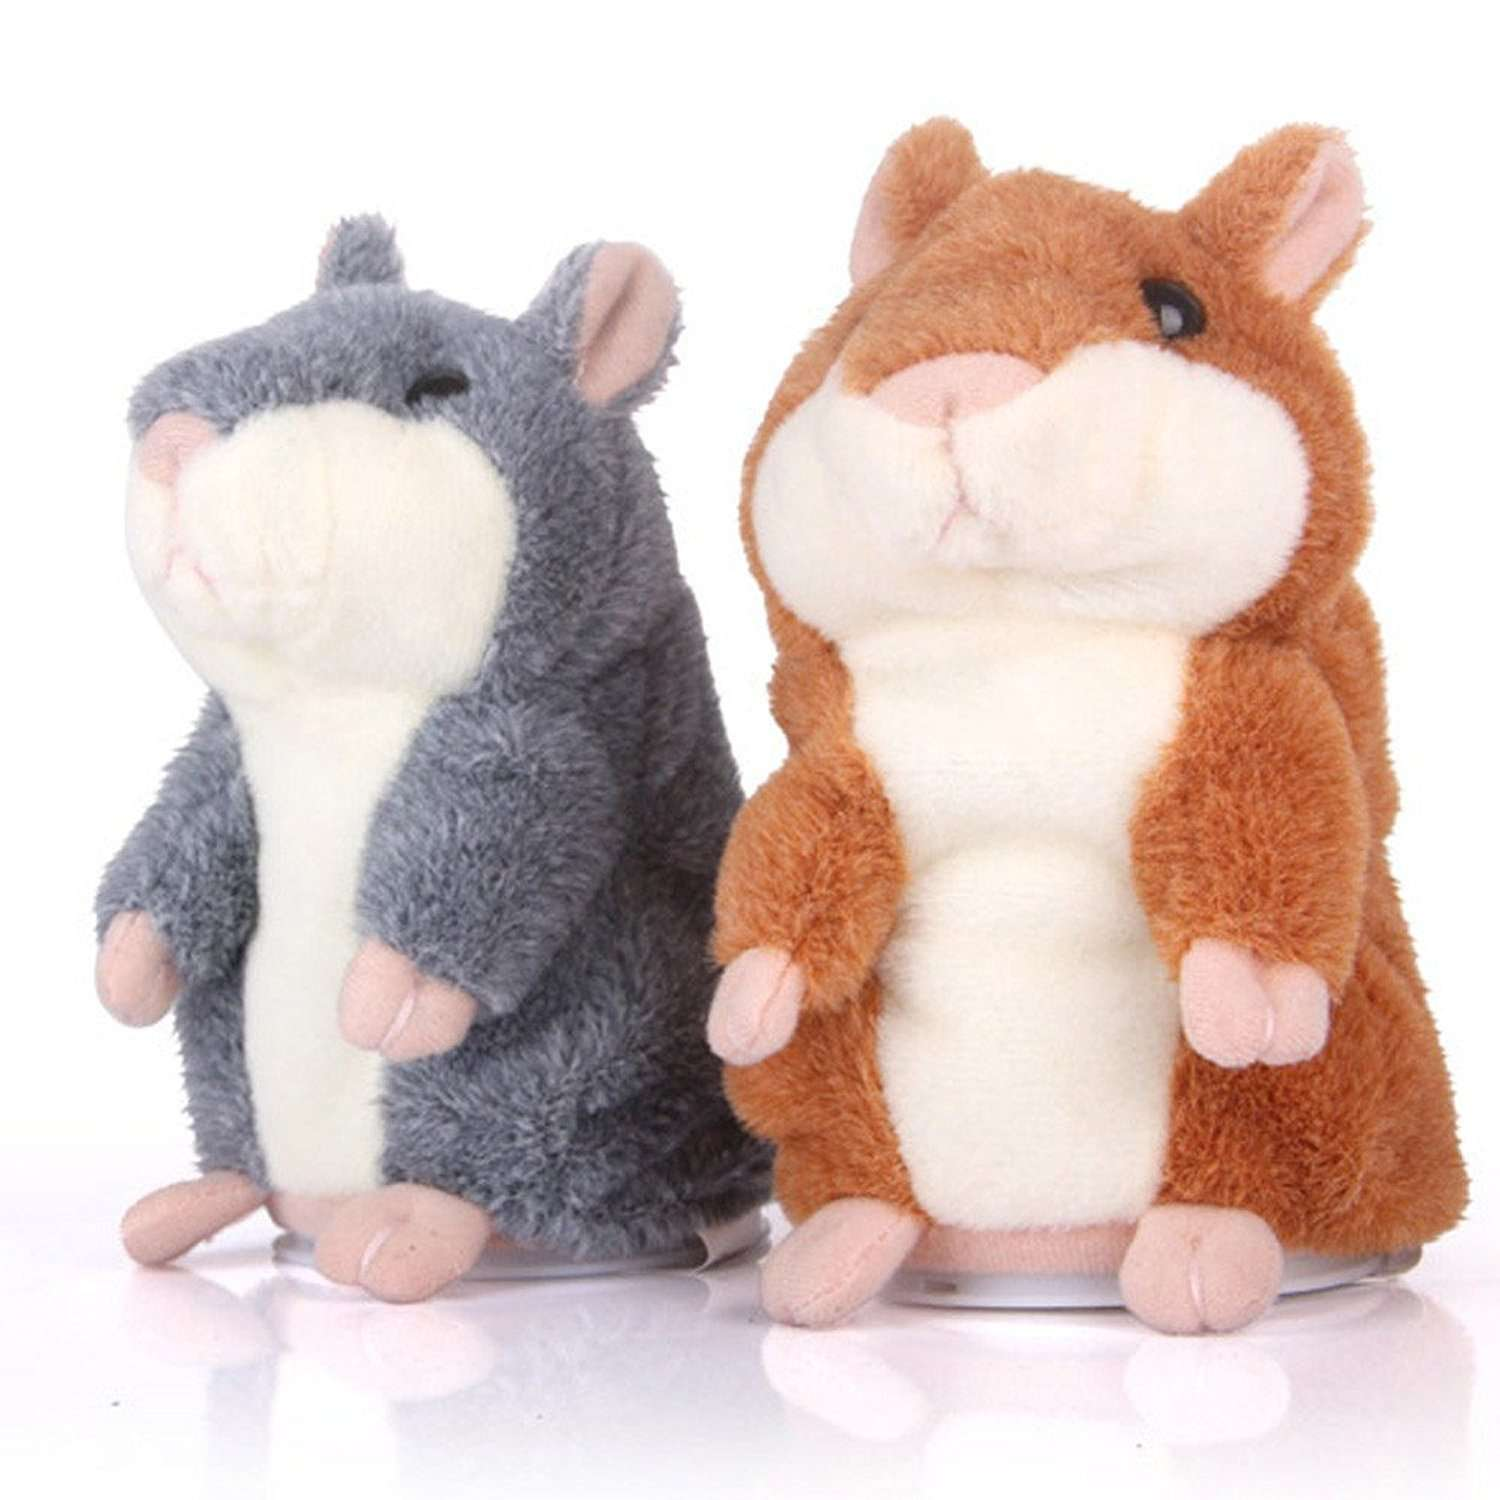 Criceto™ Talking Hamster Plush Toy